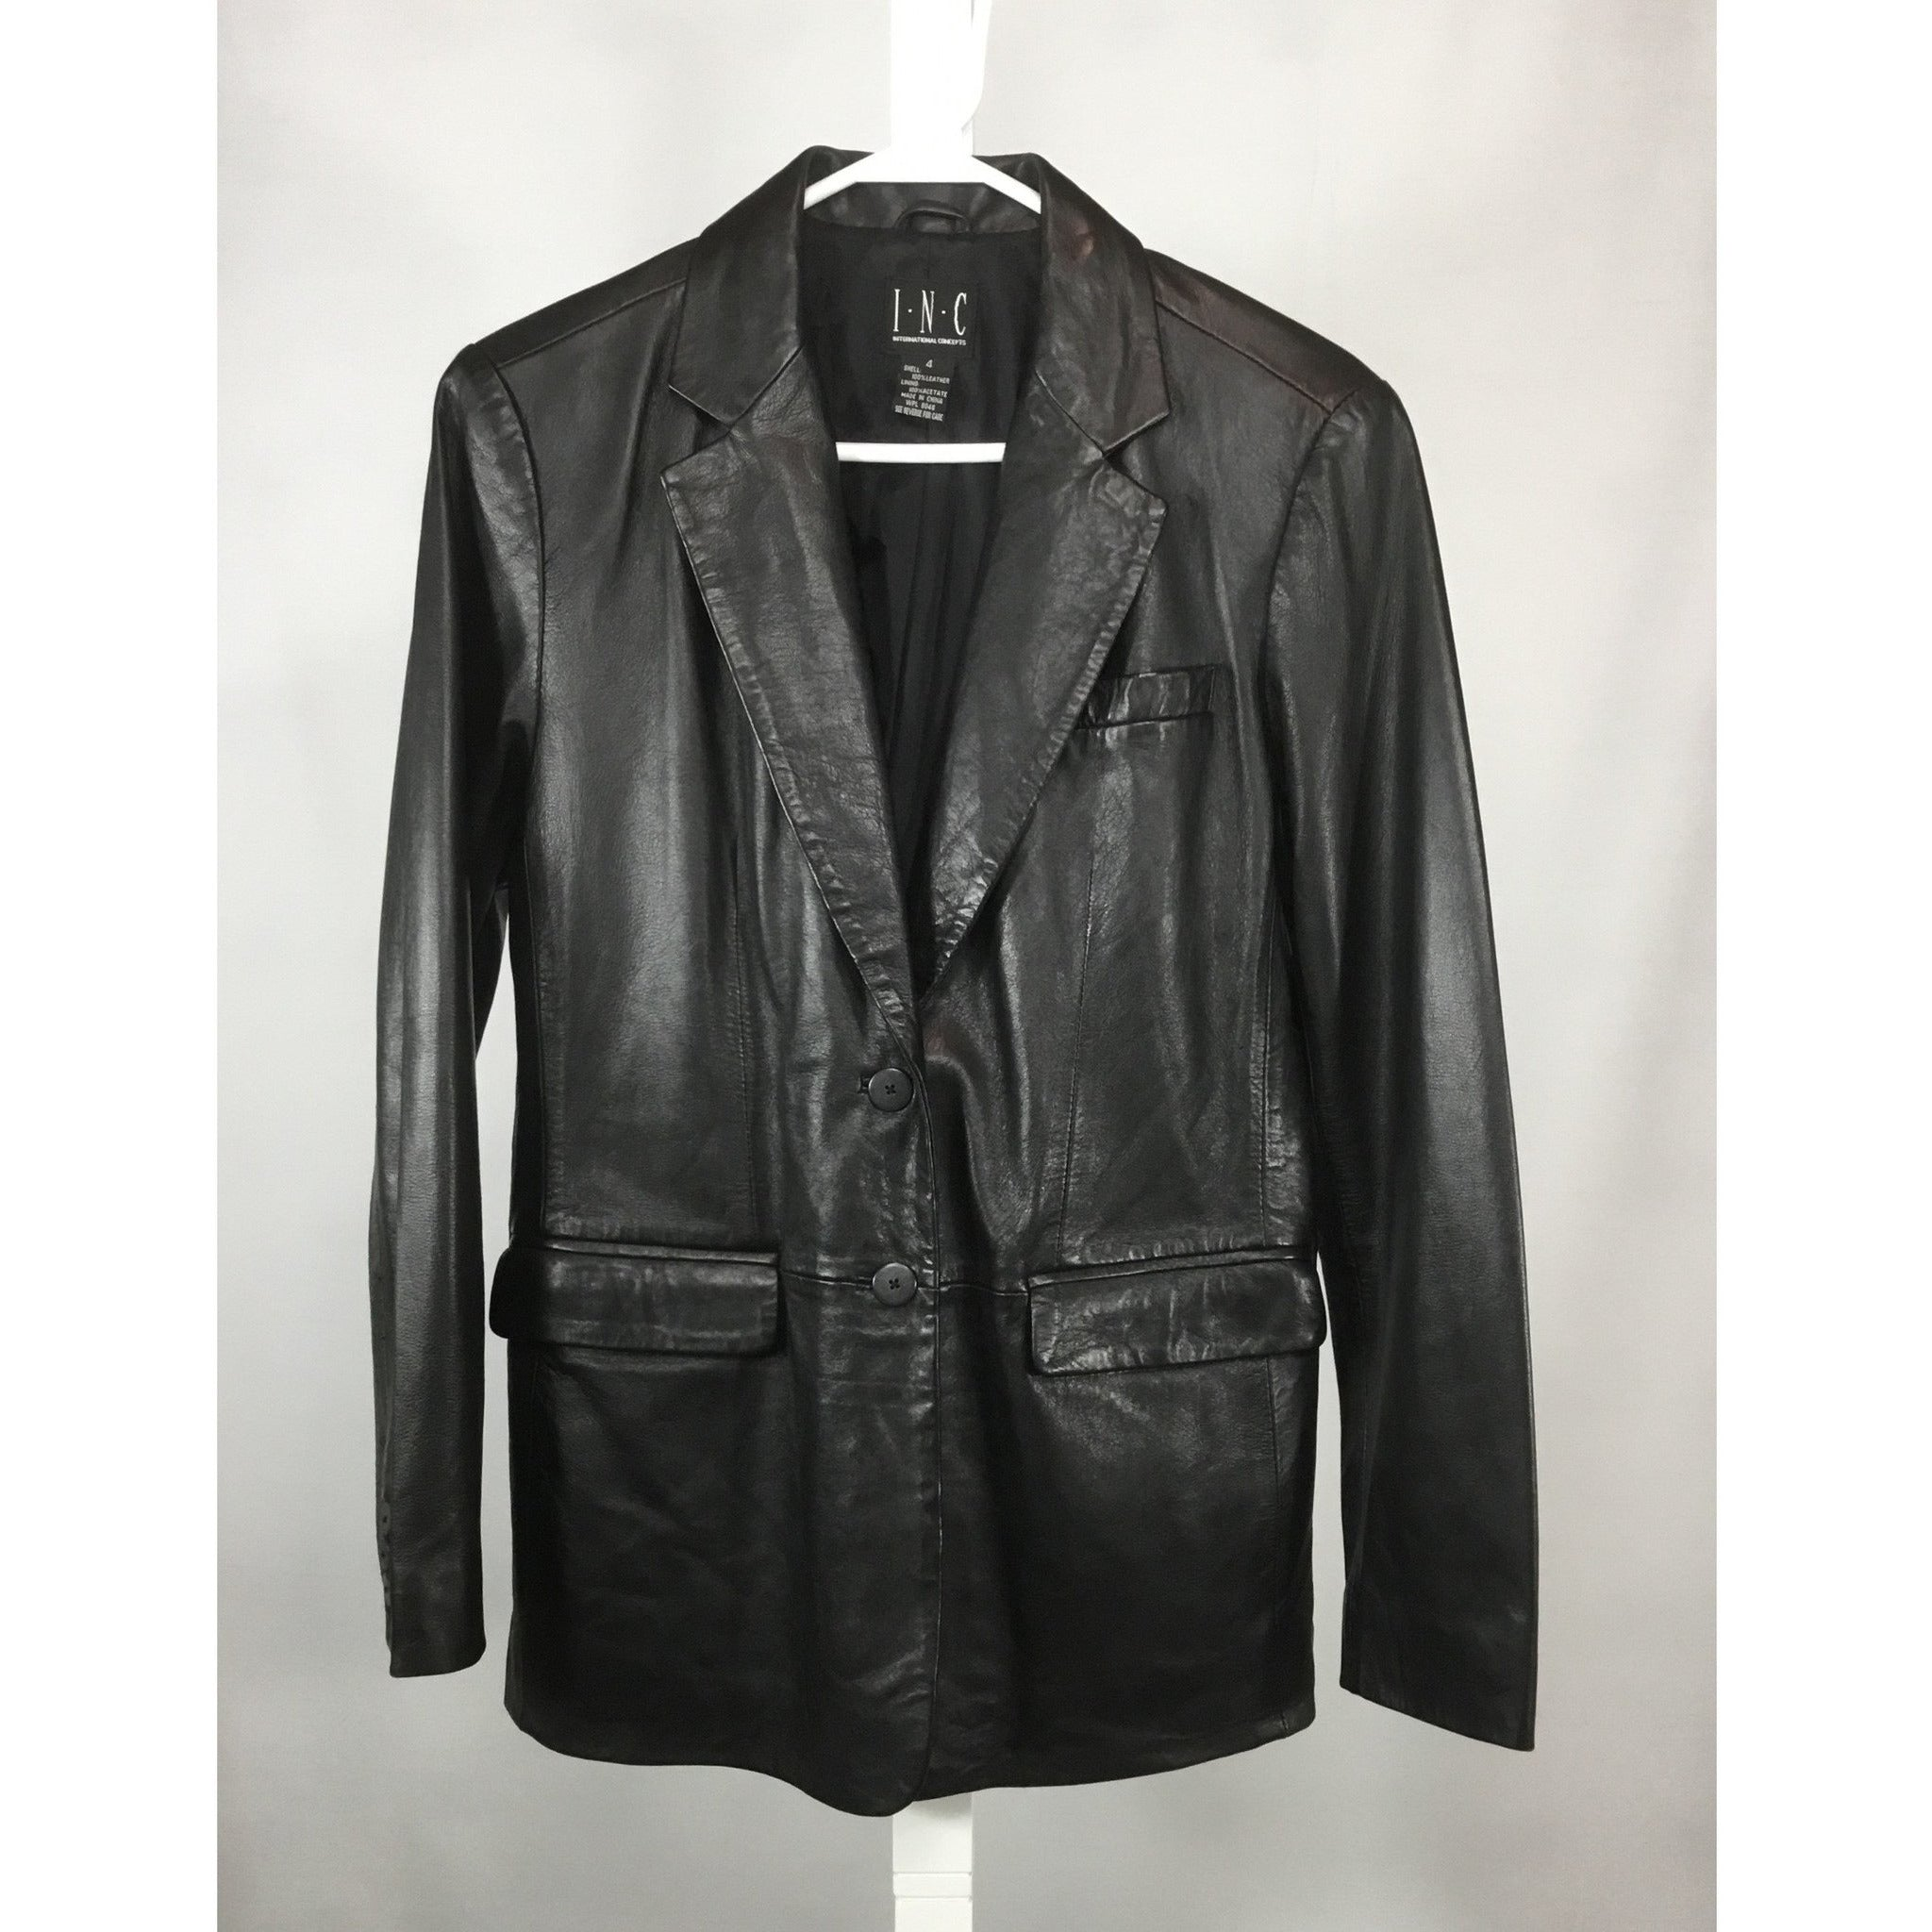 INC leather blazer